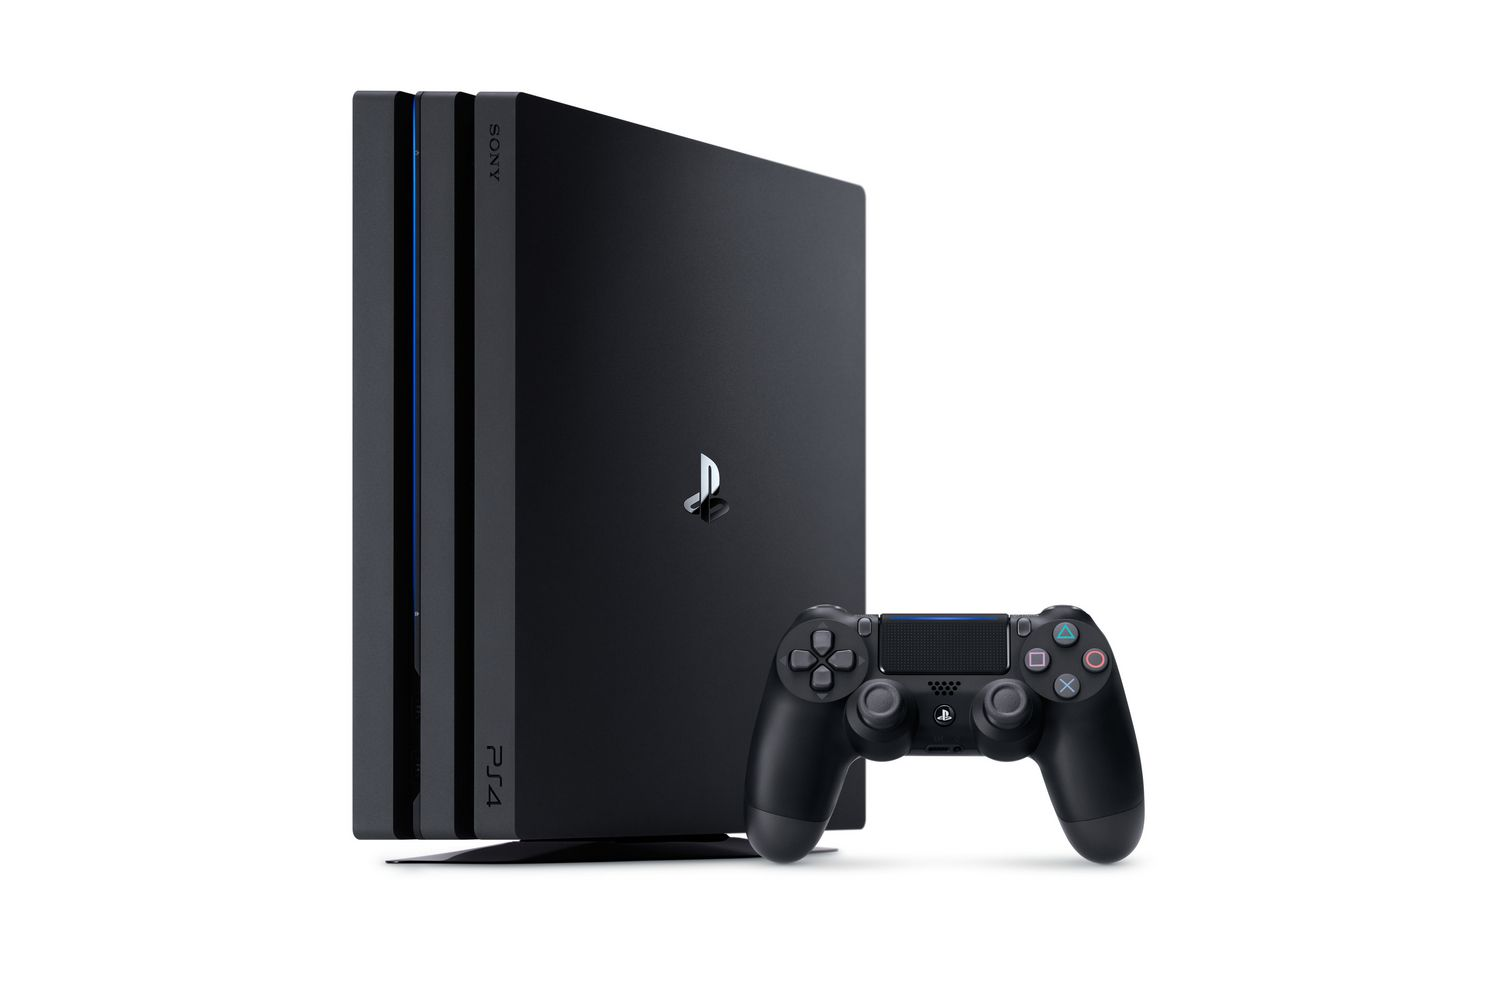 buy video games online consoles hardware walmart playstationreg4 pro 1tb console